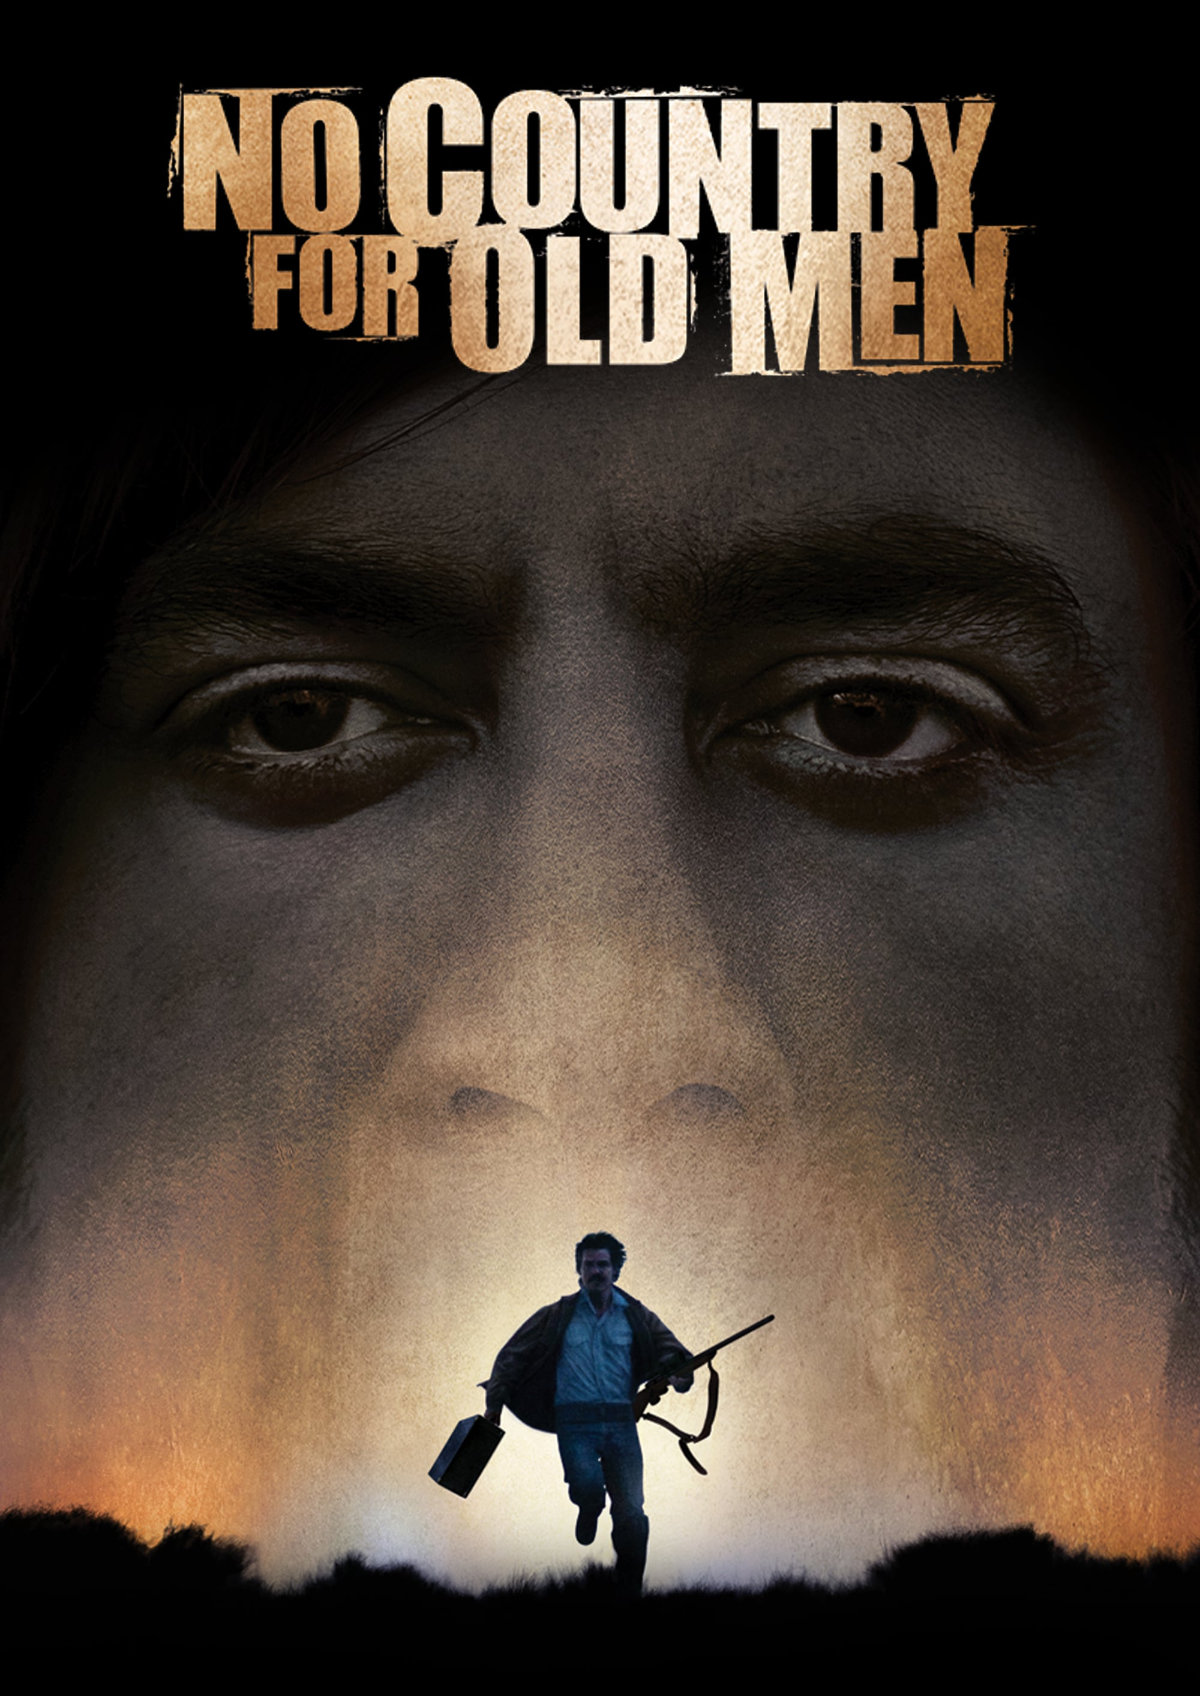 'No Country For Old Men' movie poster